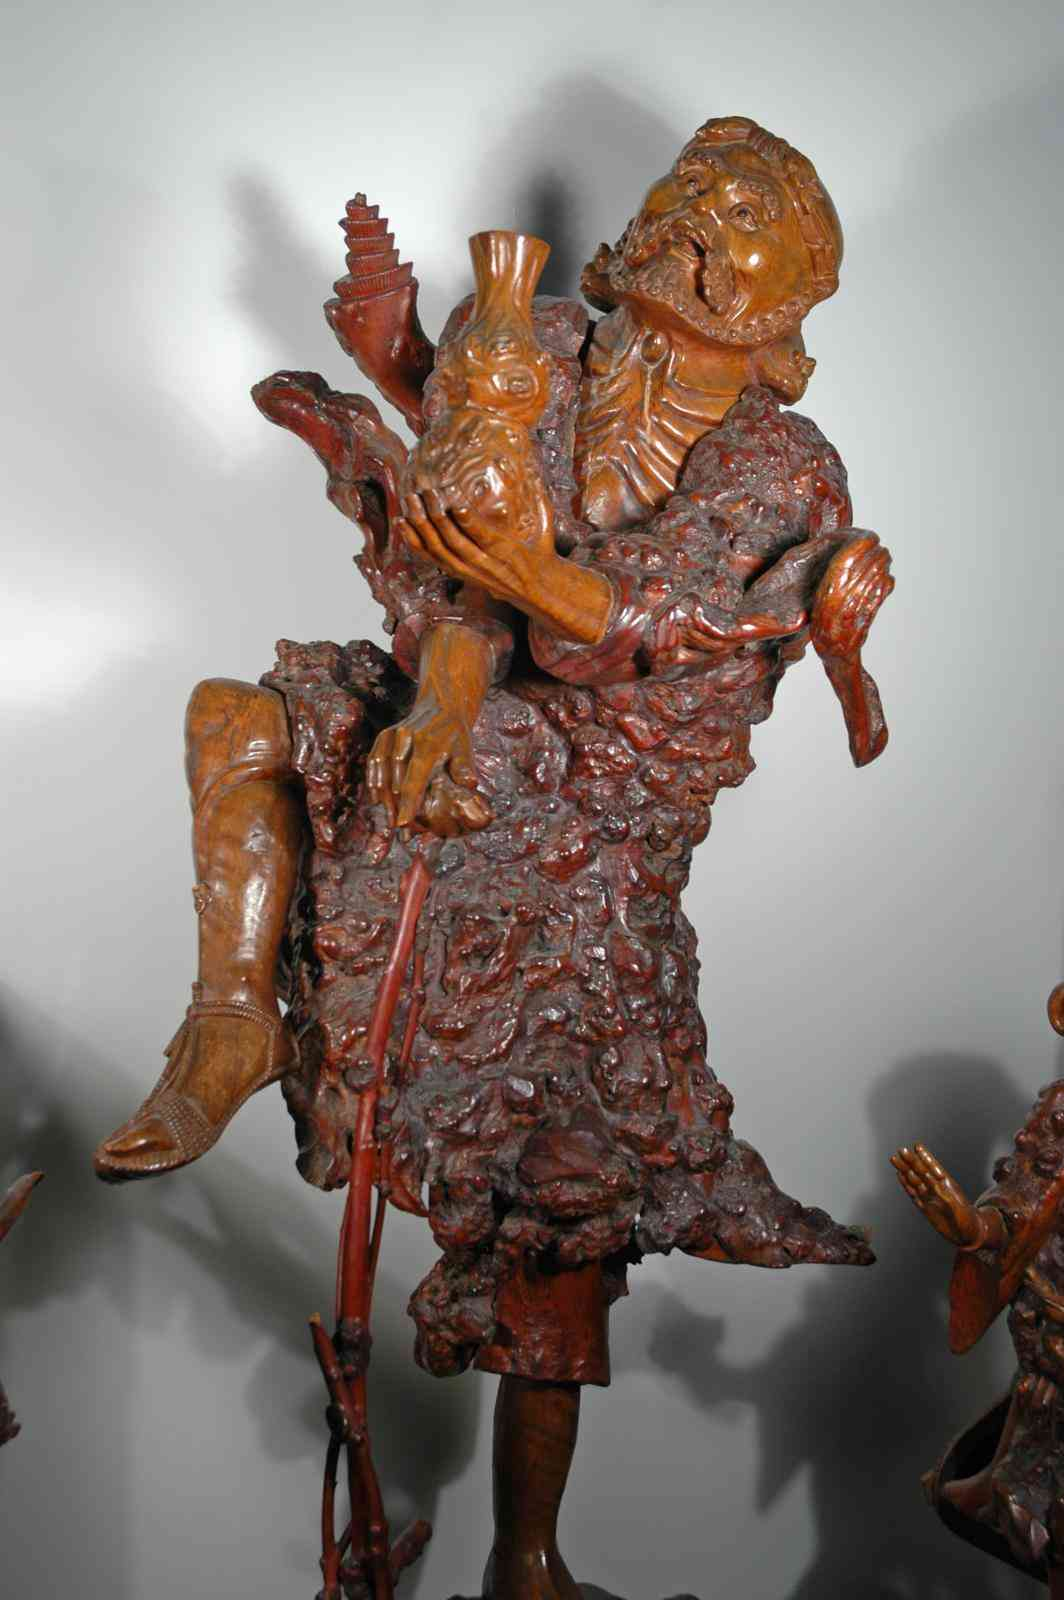 CHINESE WOOD SCULPTURE  TITLED—LI OF THE IRON CRUTCH.  ONE OF THE LEGENDARY EIGHT TAOIST IMMORTALS